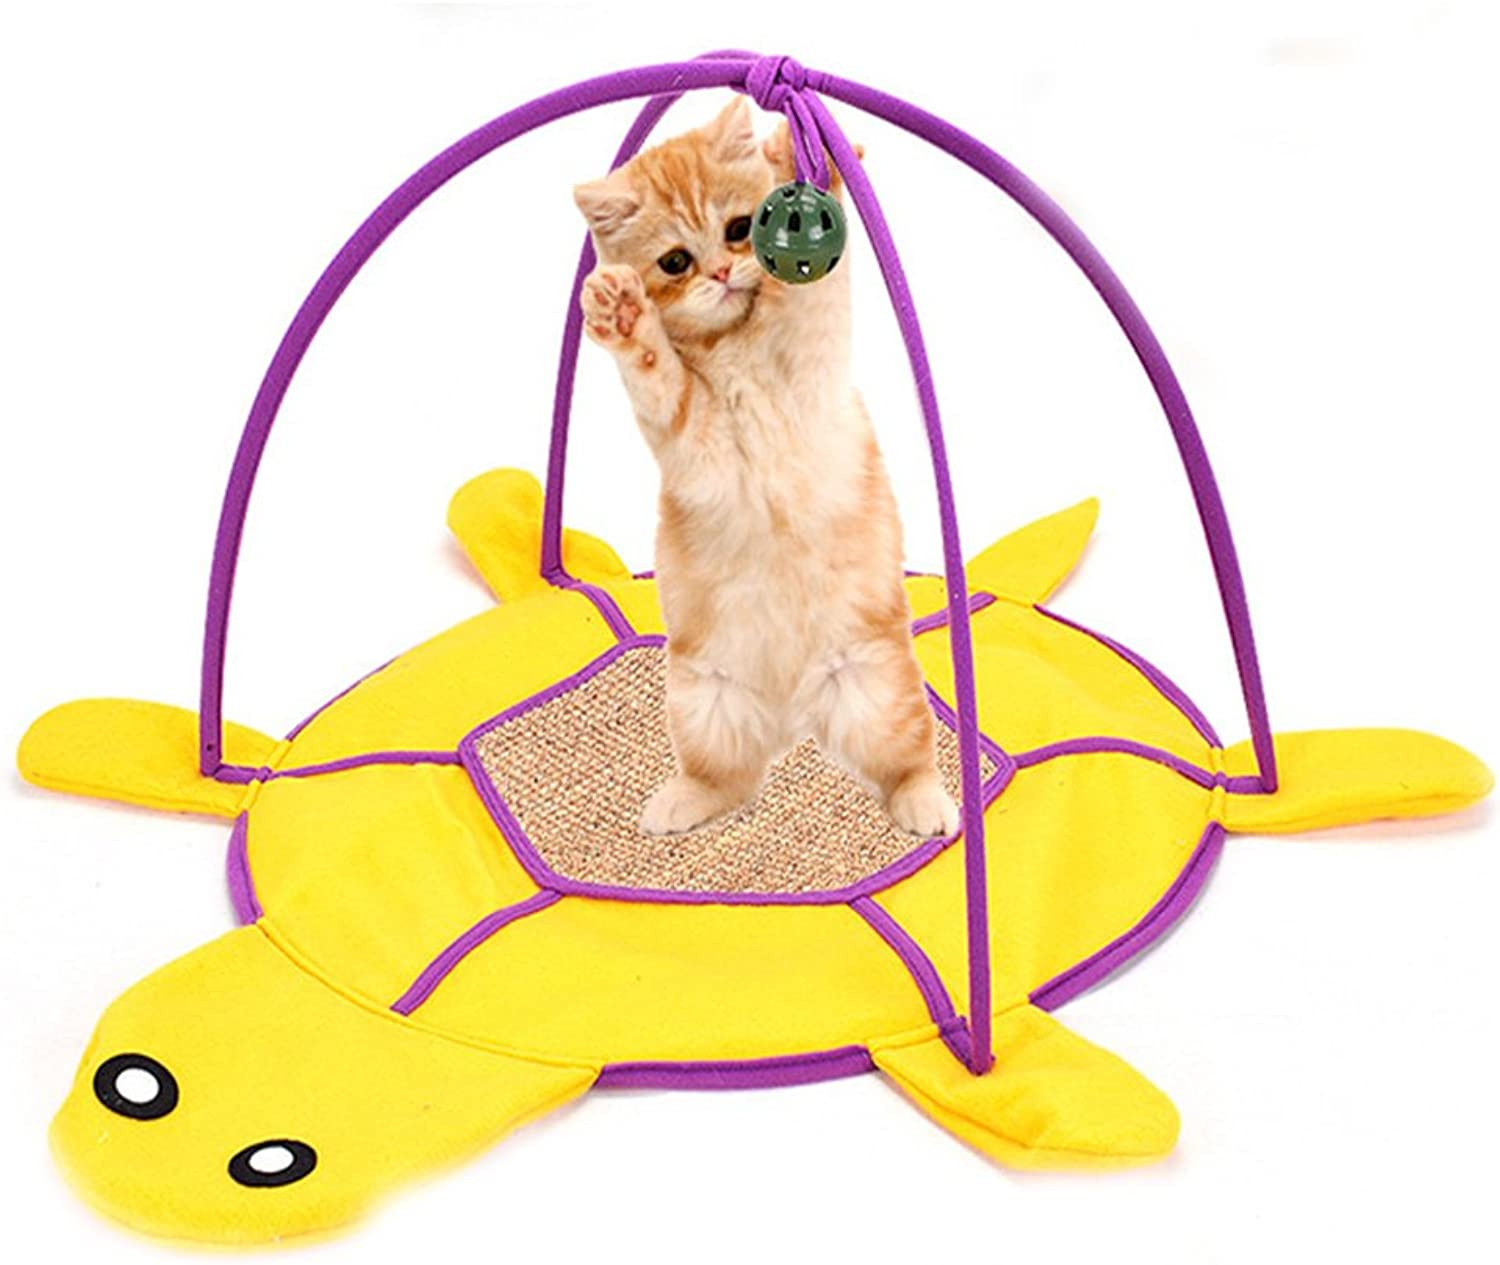 Cat Play Mat Activity Pet Kitten Padded Pet Kitten Padded Bed with Hanging Toys Balls